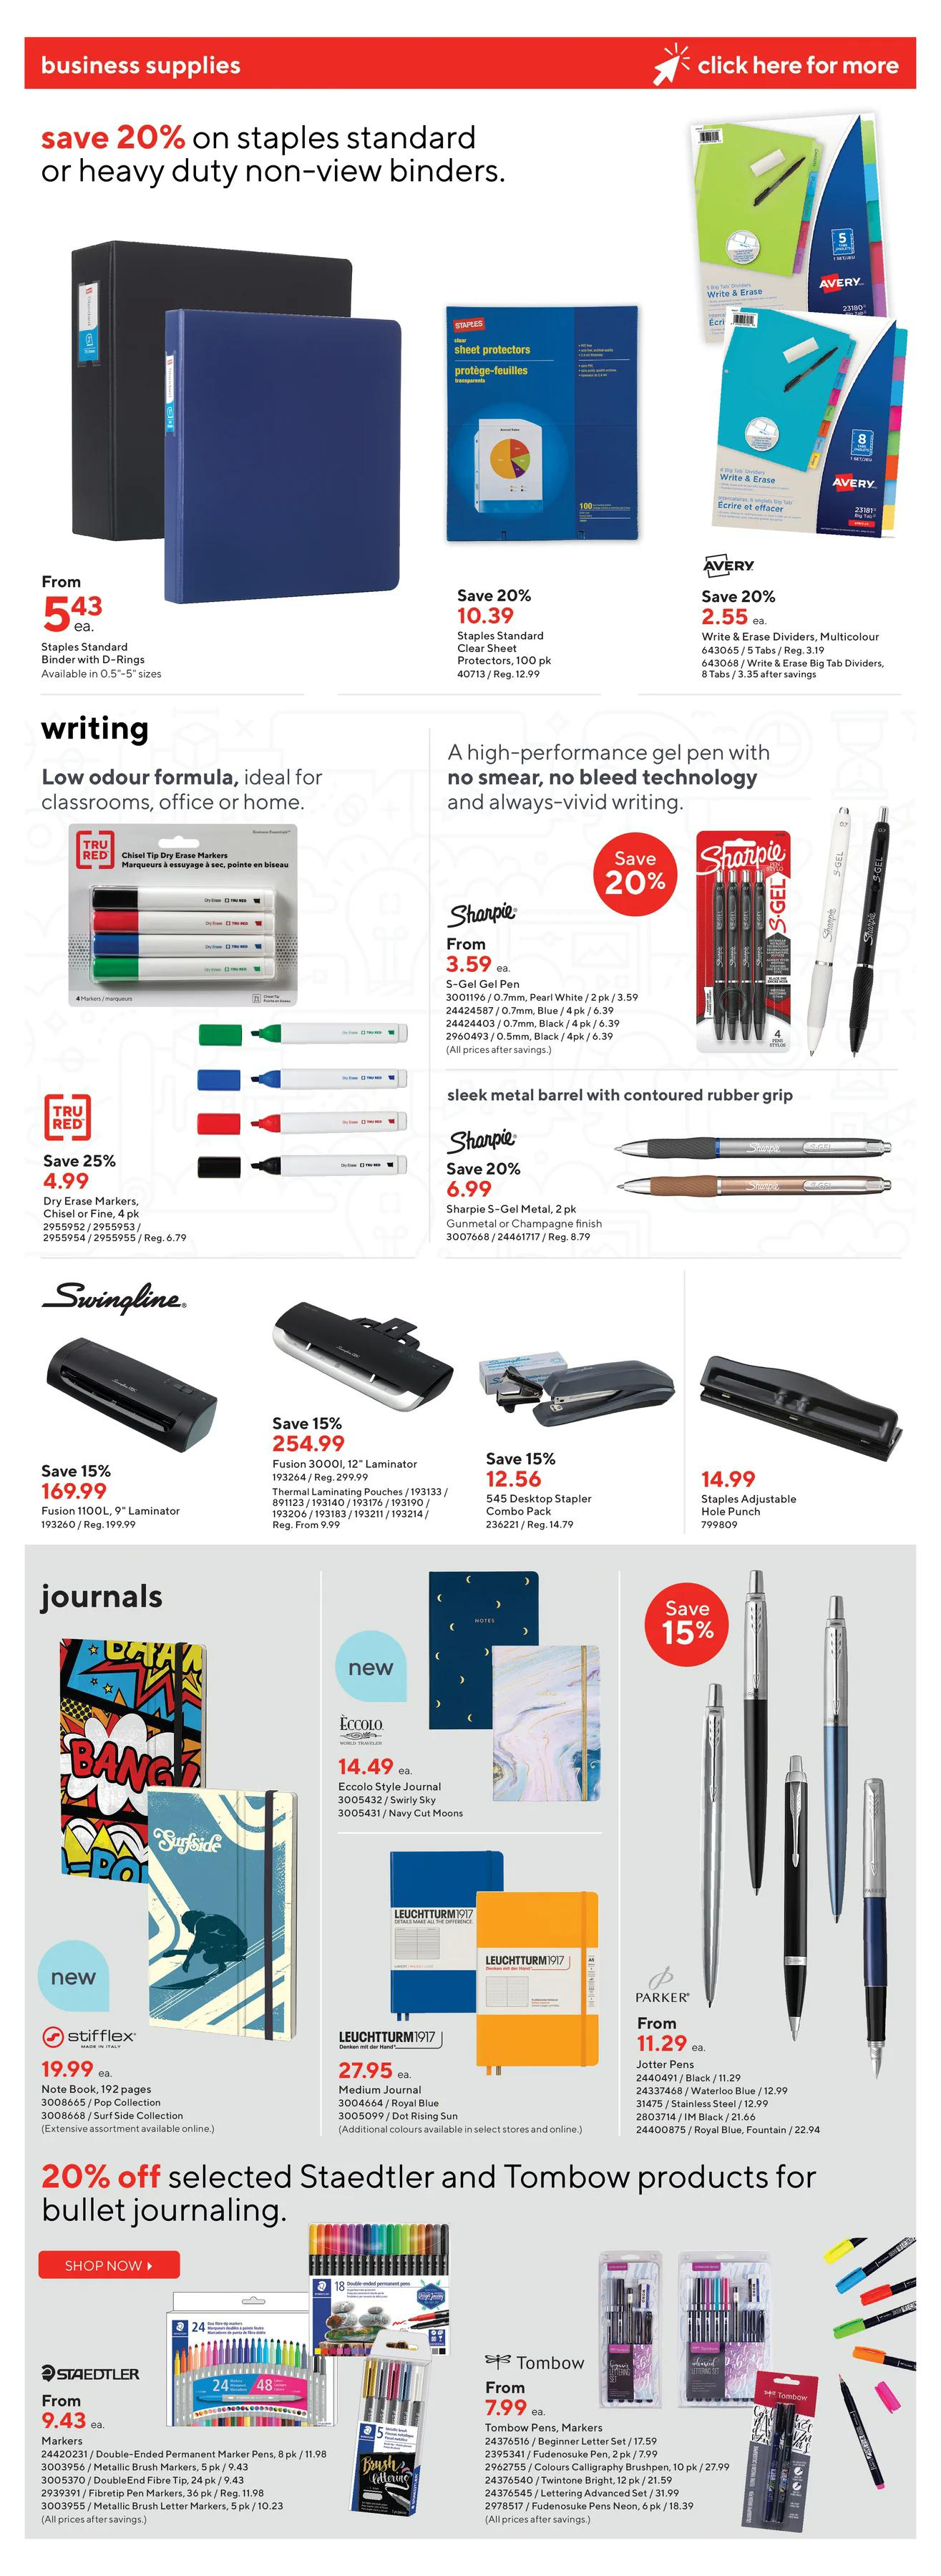 Staples - Weekly Flyer Specials - Page 12